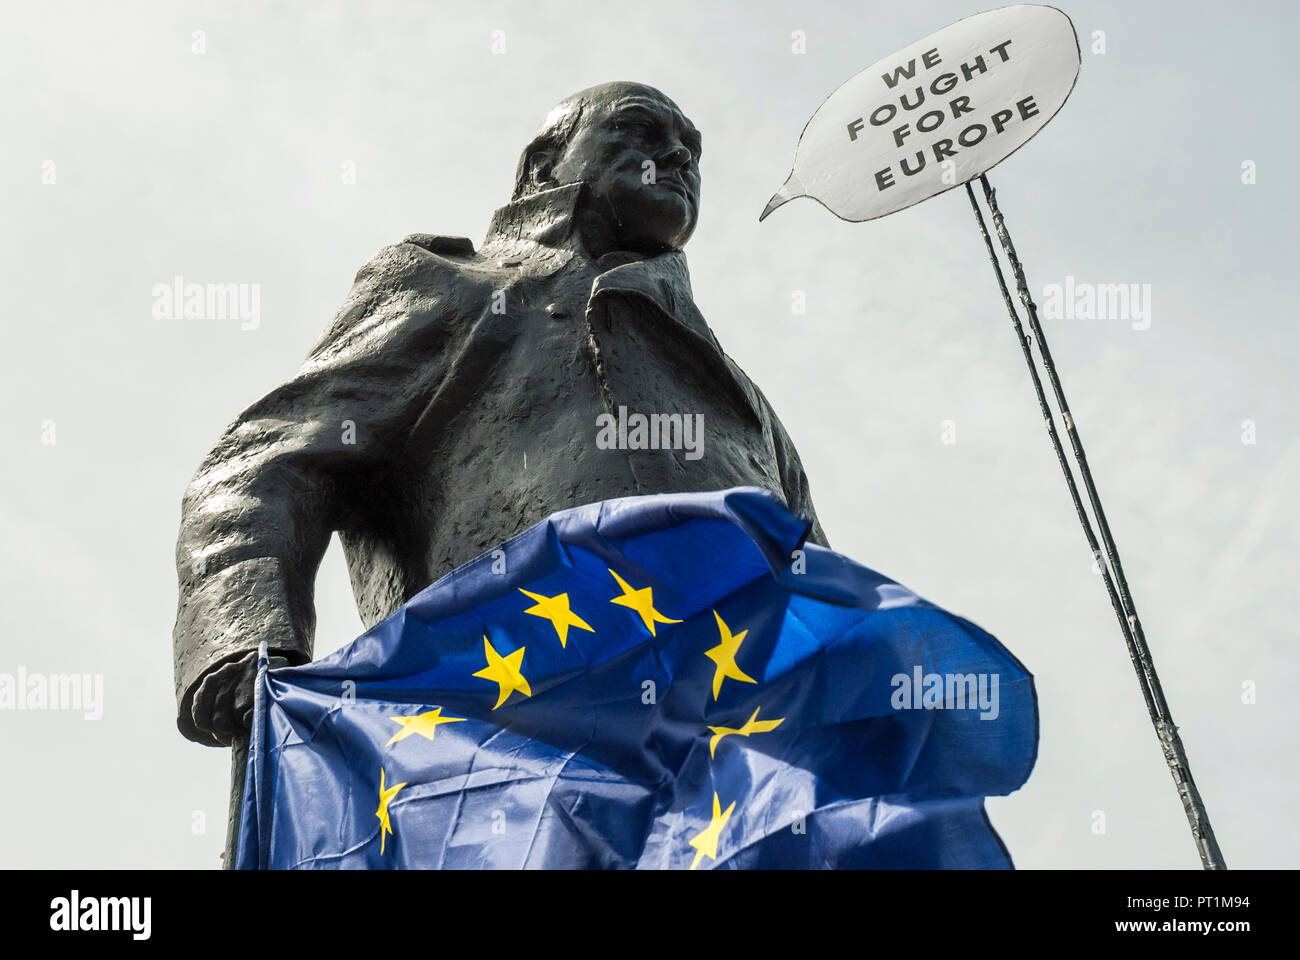 Statue of Sir Winston Churchill located outside Parliament holding an EU flag (blue with gold stars) with a speech bubble 'We fought for Europe' - Stock Image